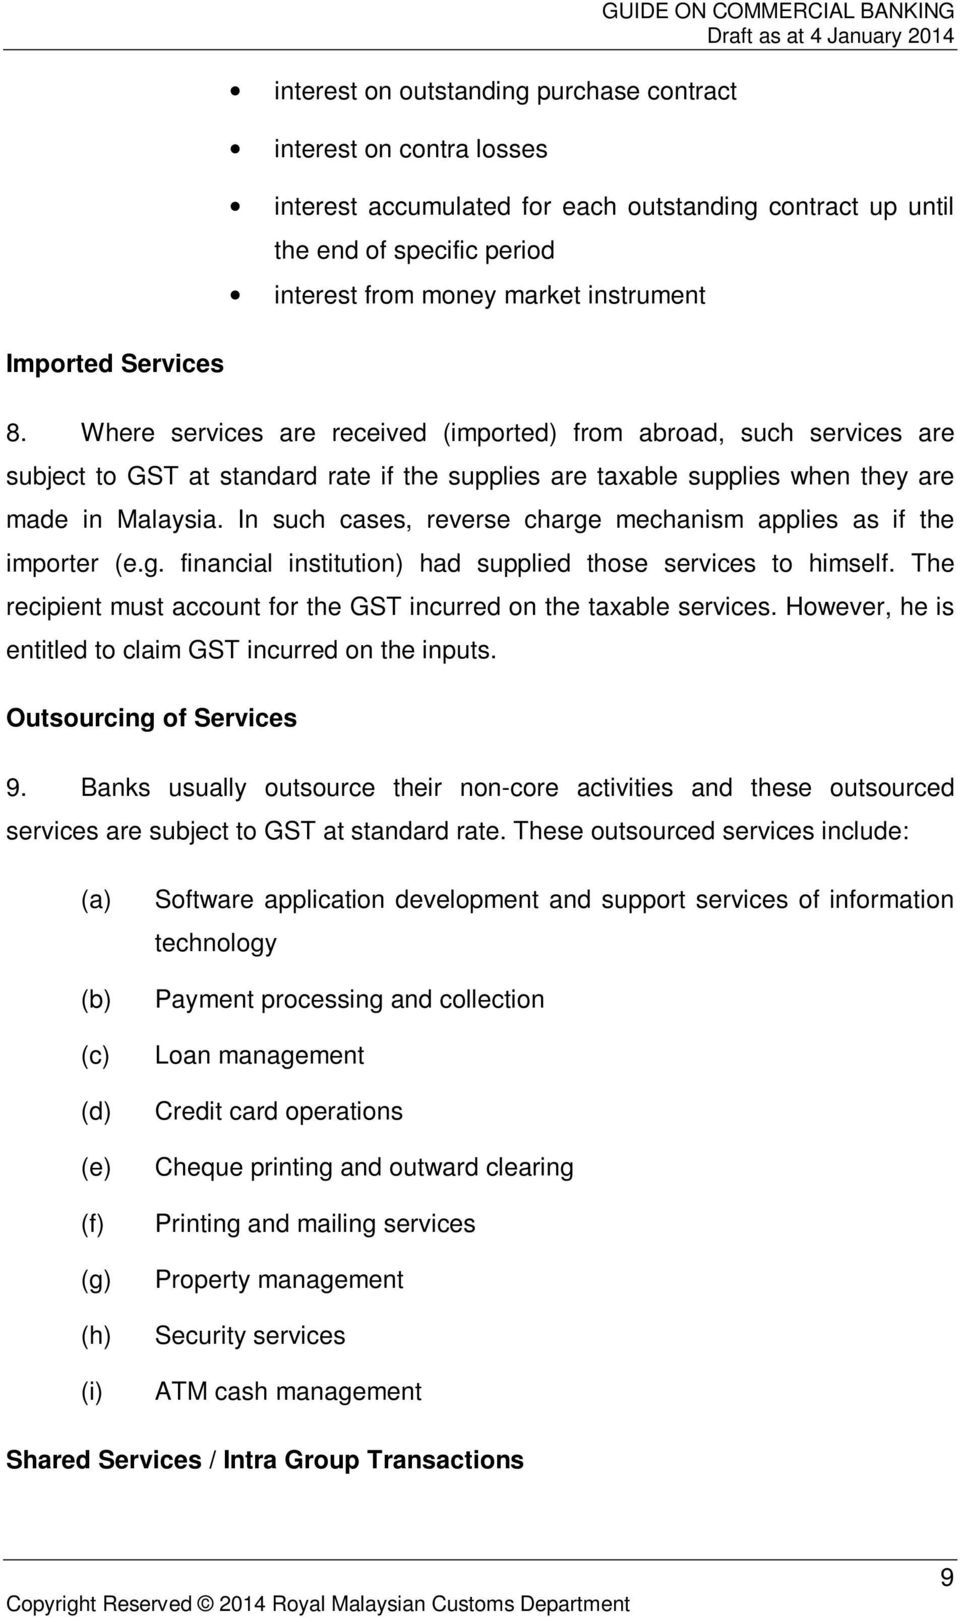 Where services are received (imported) from abroad, such services are subject to GST at standard rate if the supplies are taxable supplies when they are made in Malaysia.